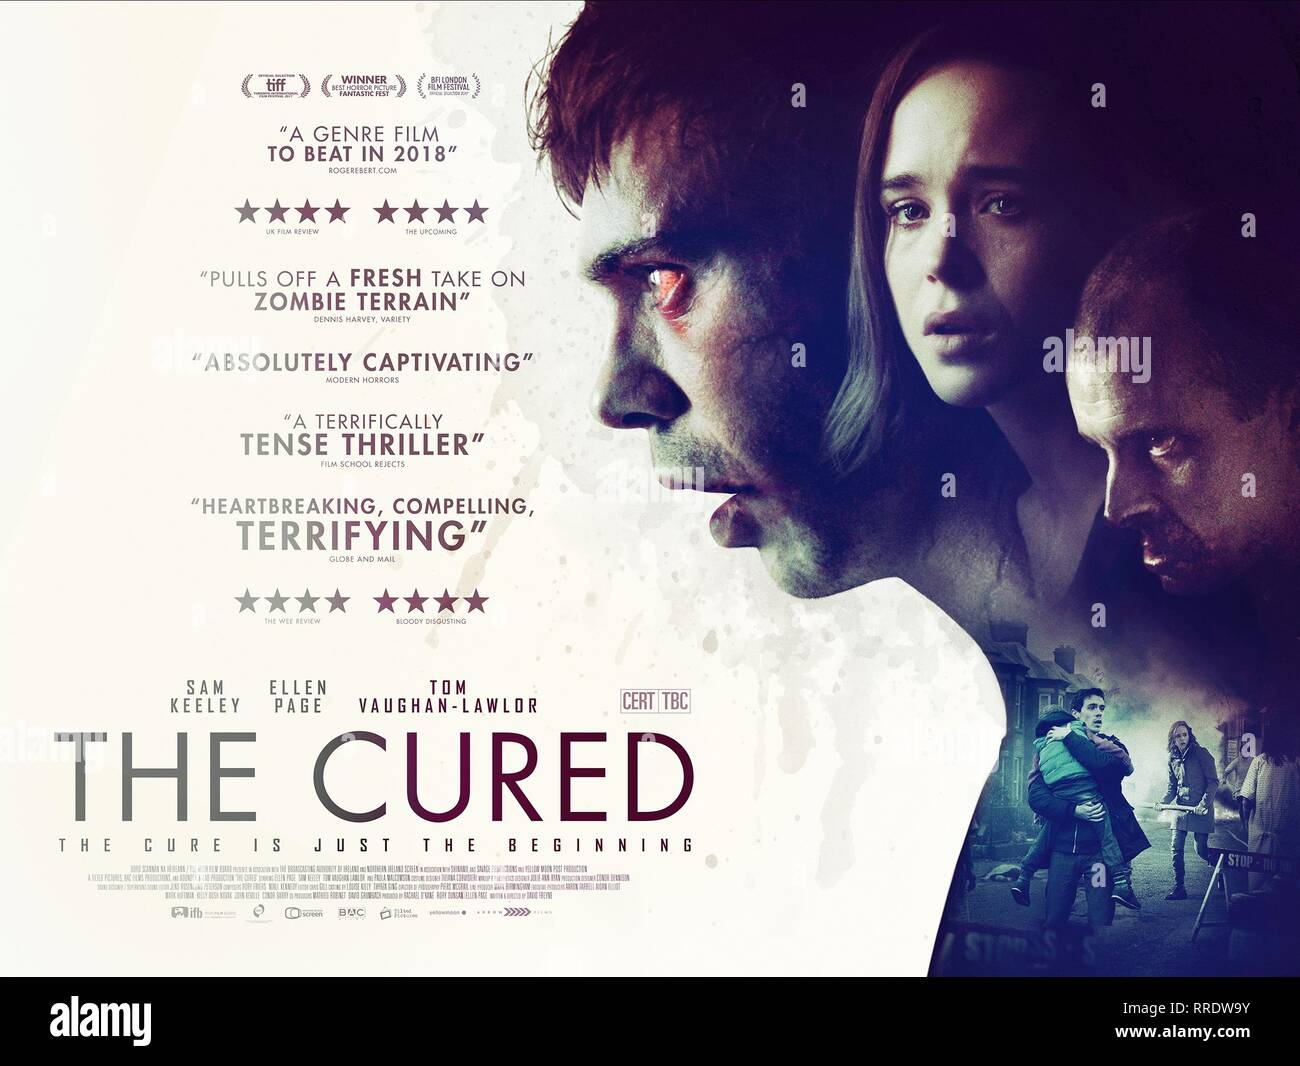 THE CURED, MOVIE POSTER, 2017 - Stock Image